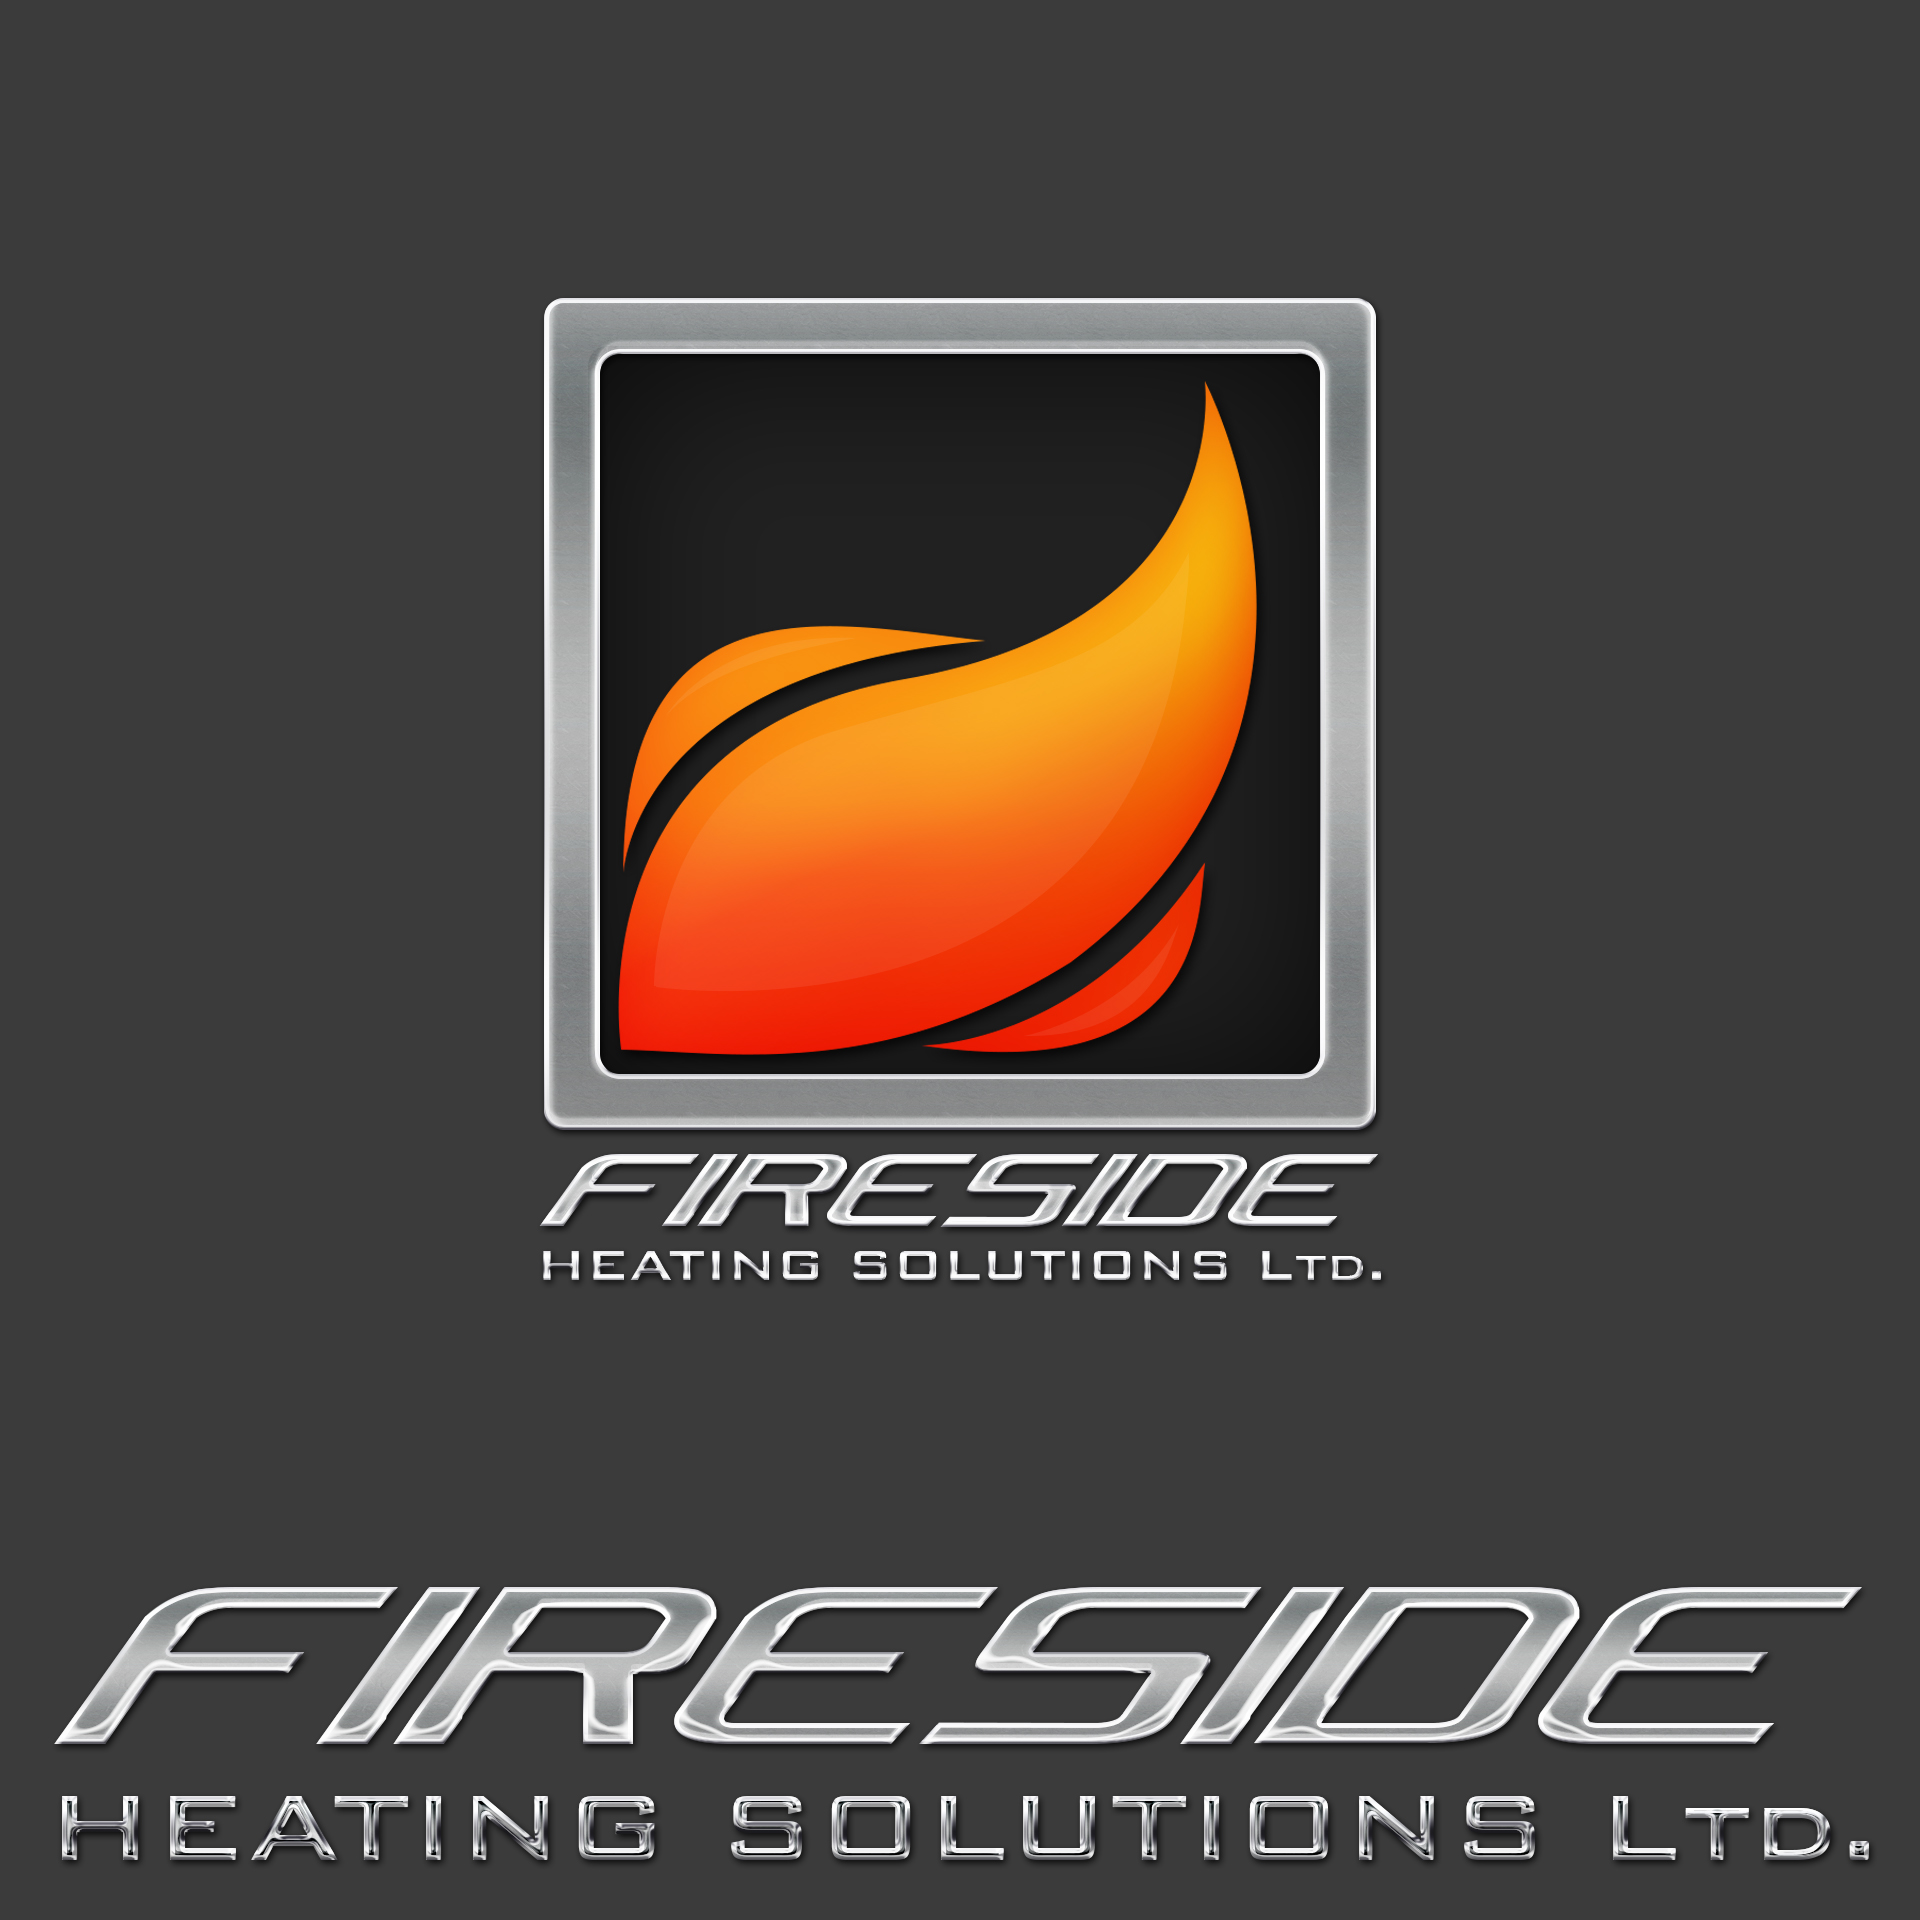 Logo Design by chAnDOS - Entry No. 116 in the Logo Design Contest Creative Logo Design for Fireside Heating Solutions Ltd..